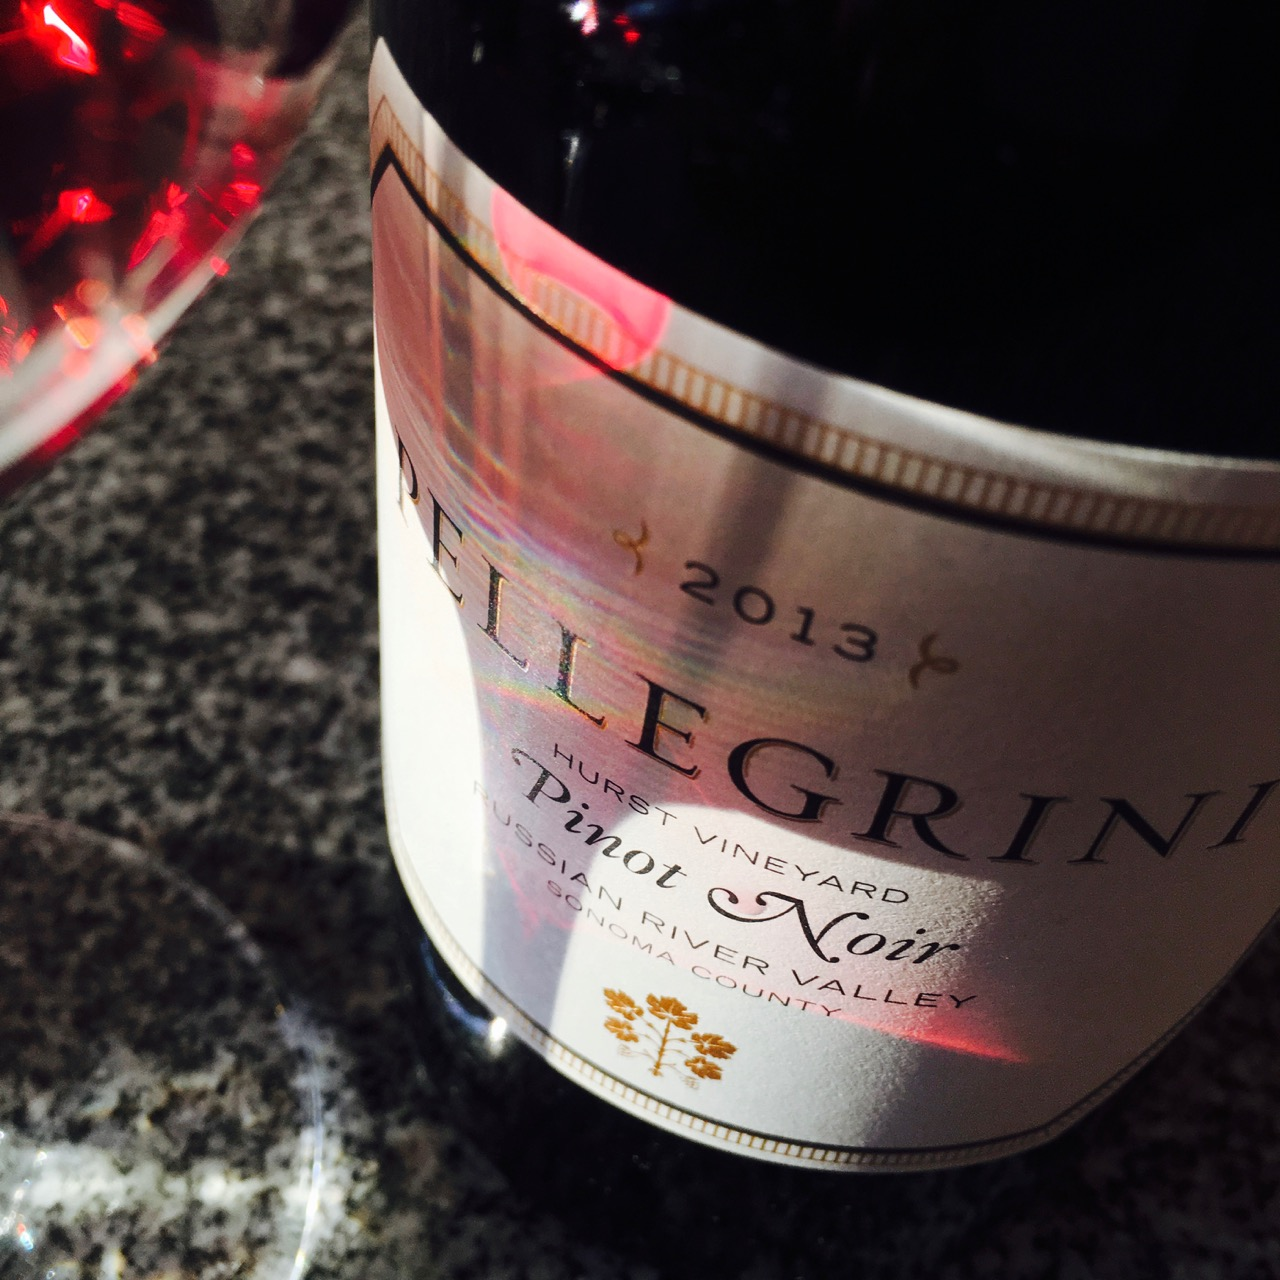 2013 Pellegrini Wine Company Pinot Noir Hurst Vineyard, Russian River Valley, Sonoma County